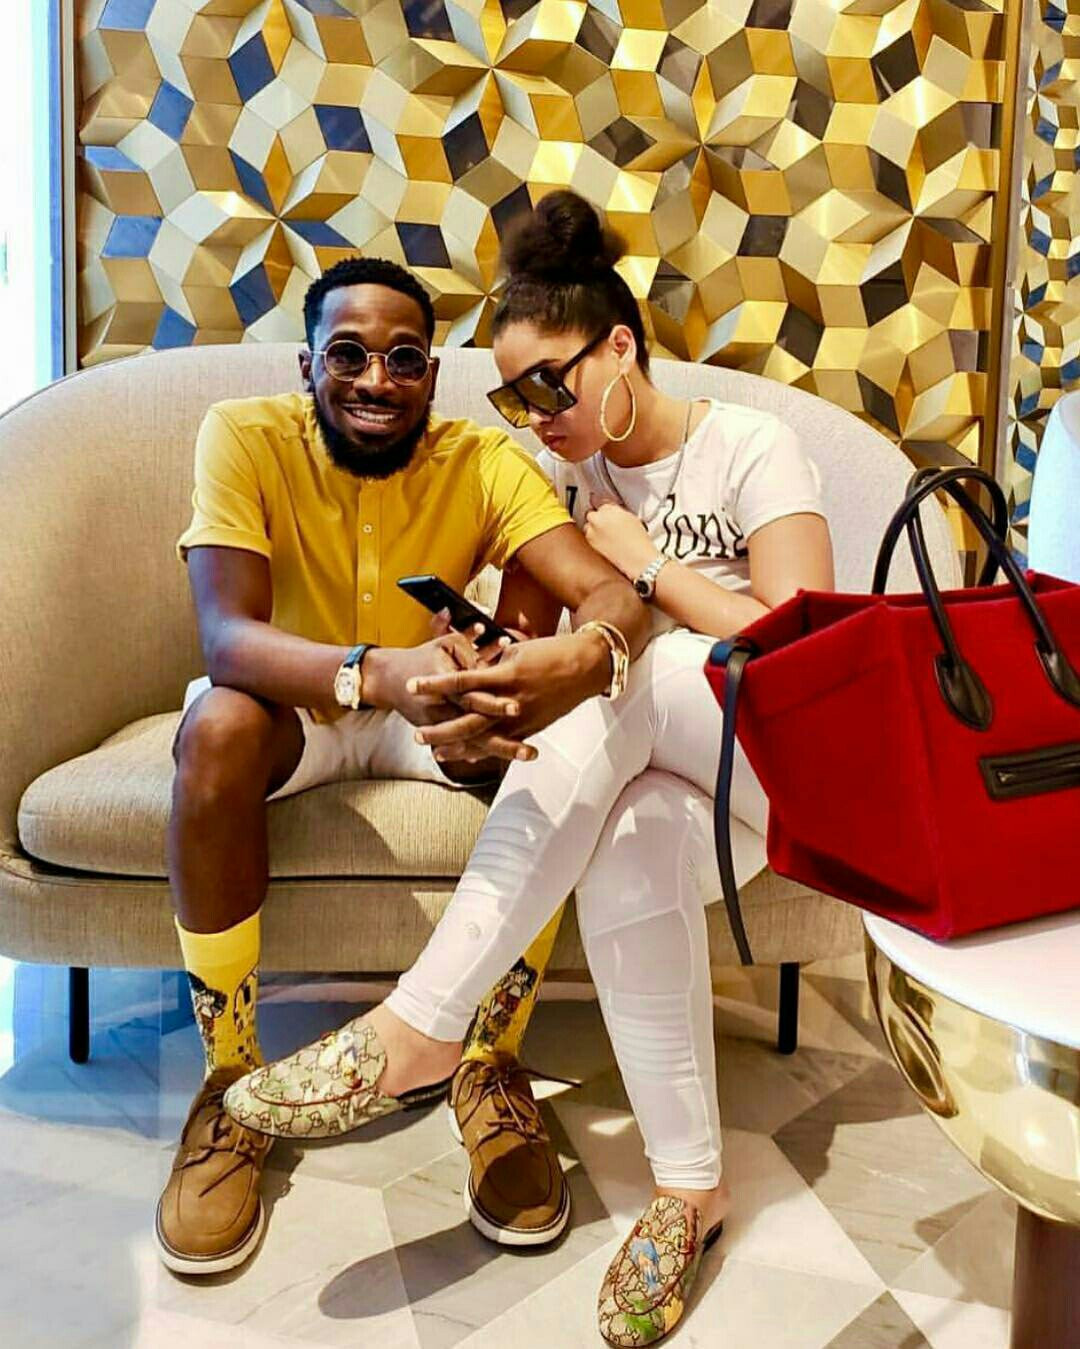 D'banj announces he's going to be a father in few months (video)